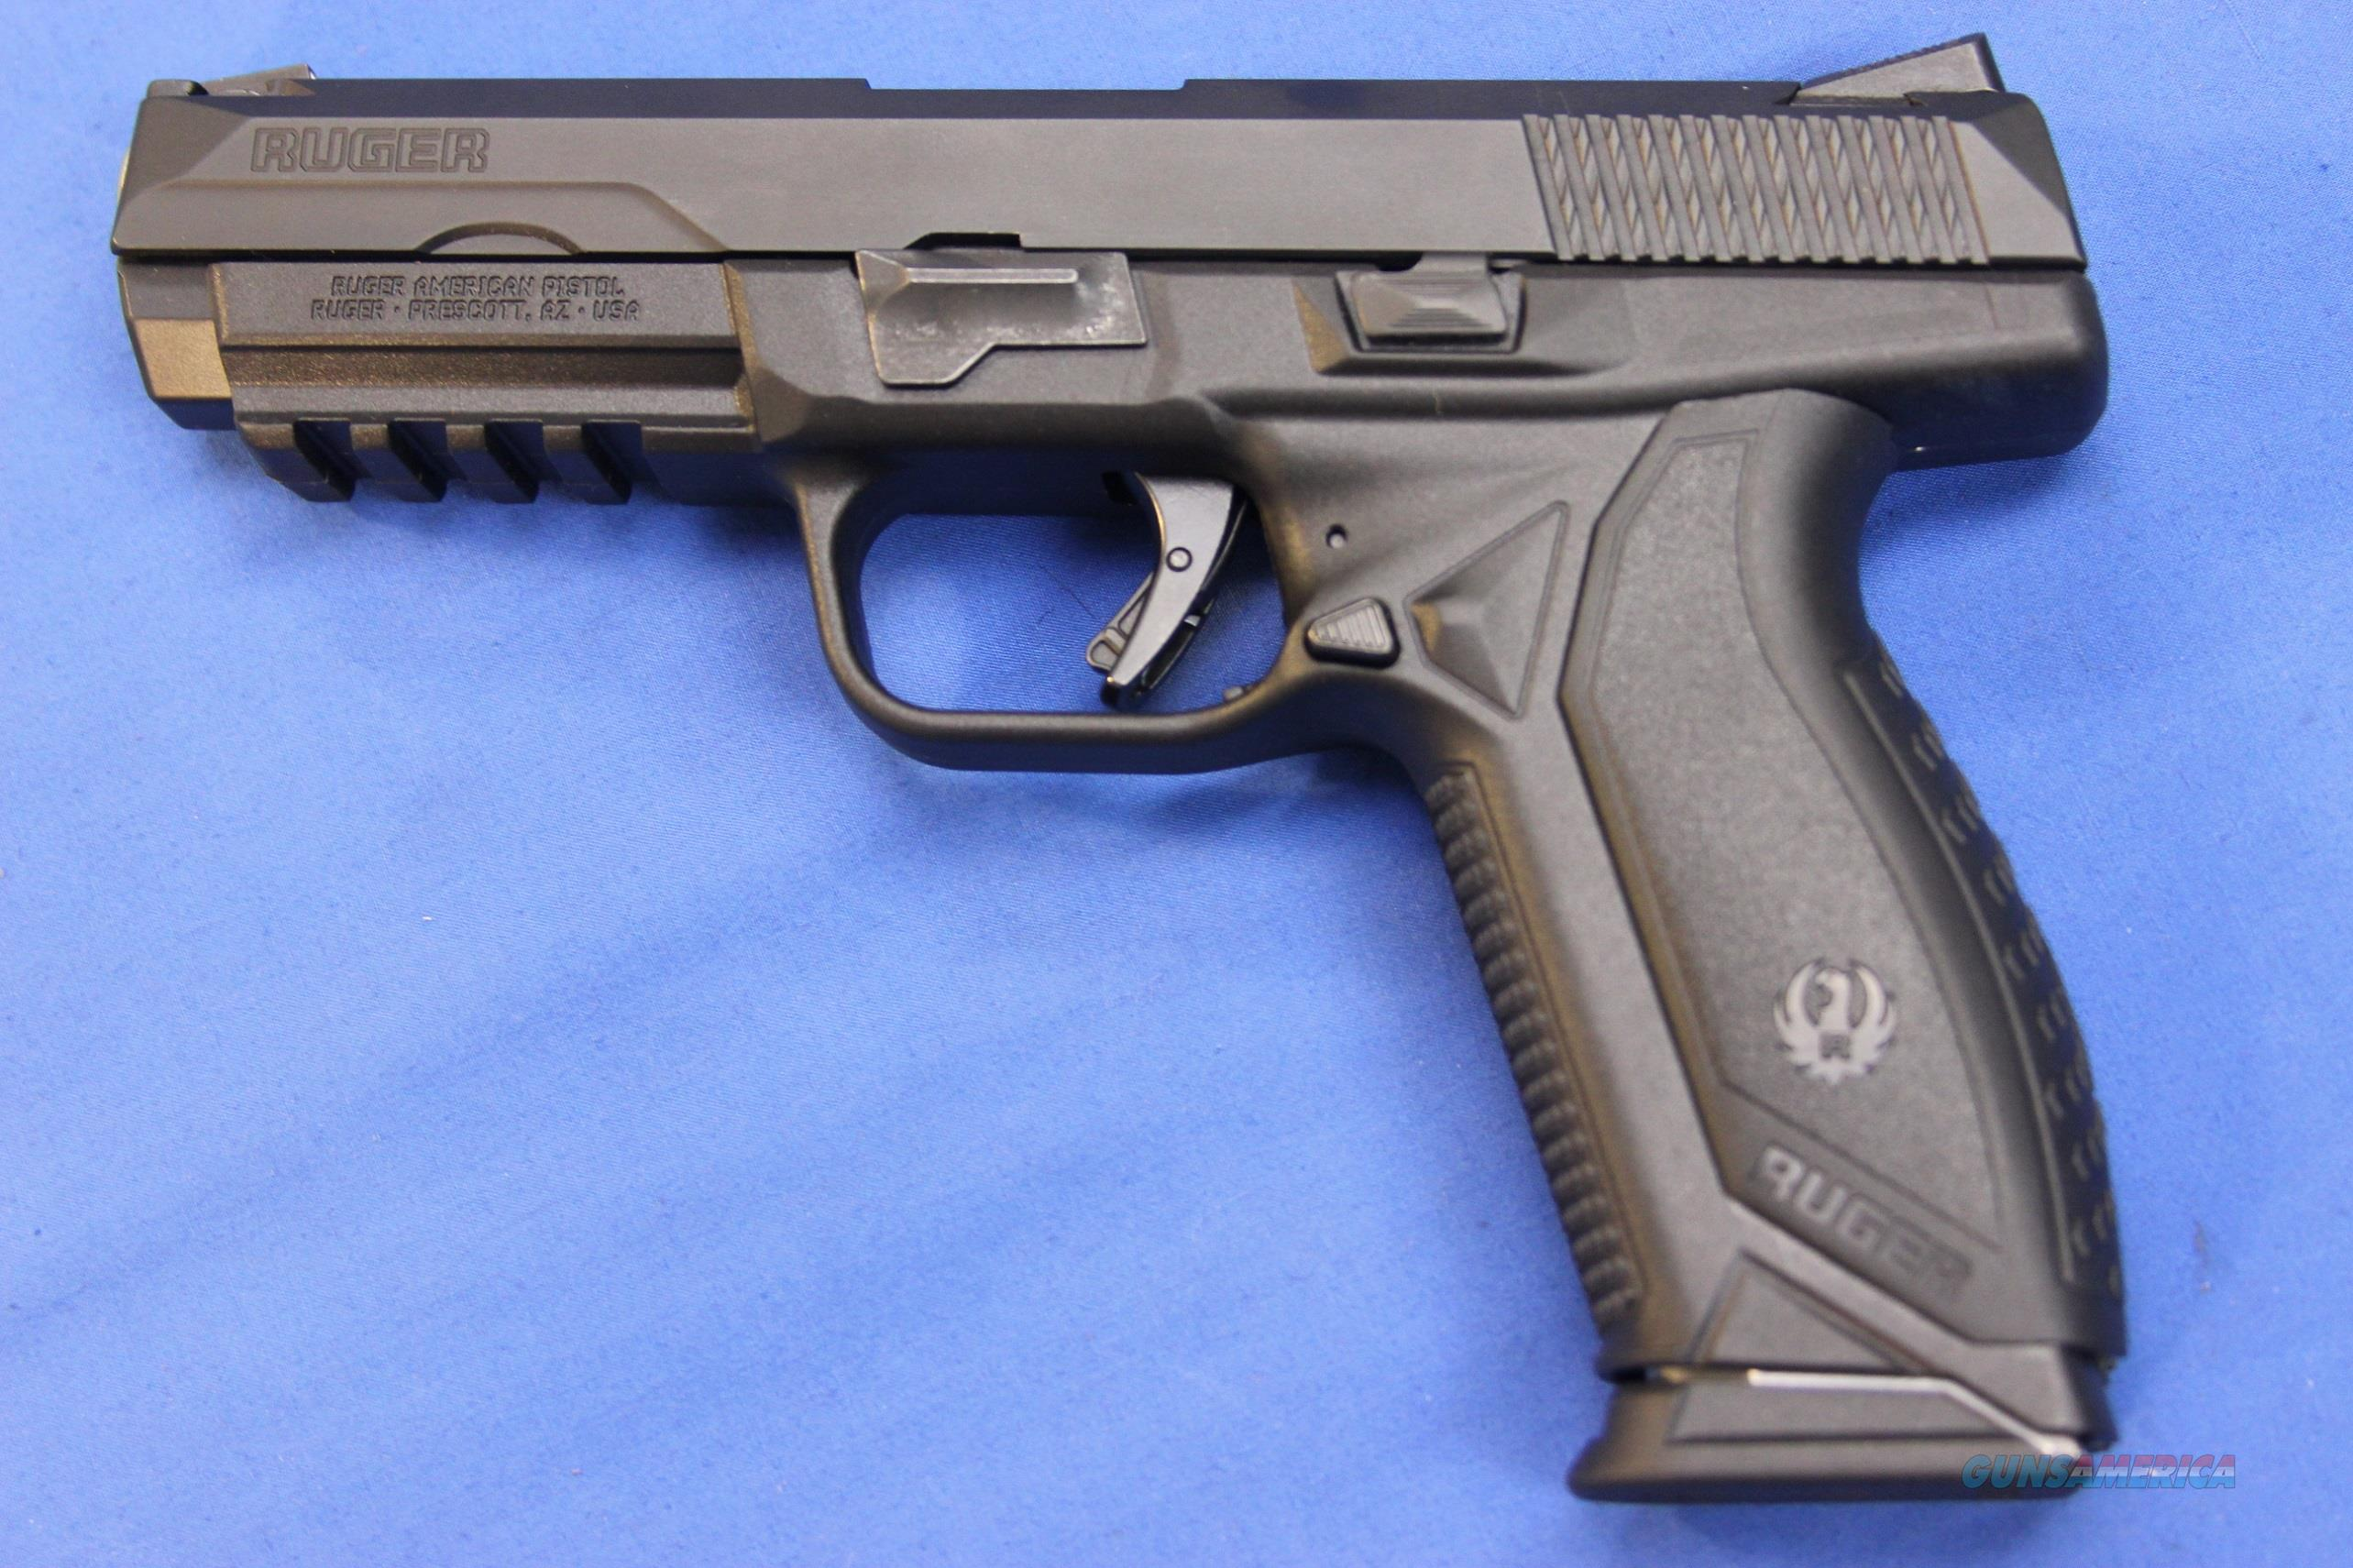 Ks Auto Sales >> RUGER AMERICAN PISTOL .45 AUTO - NEW! for sale